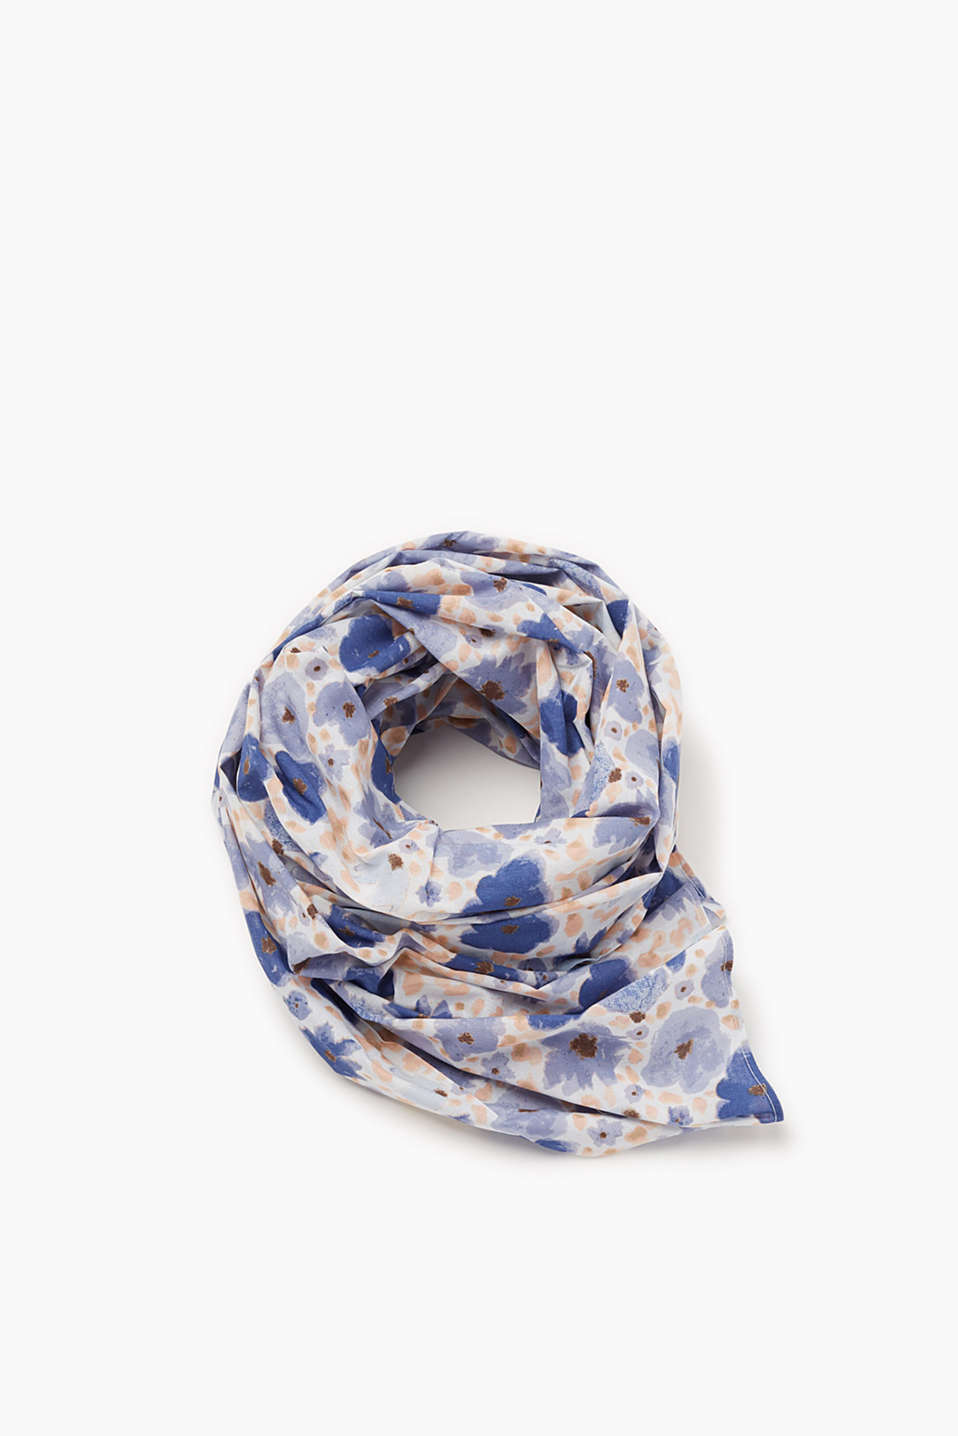 XL scarf with an abstract floral print